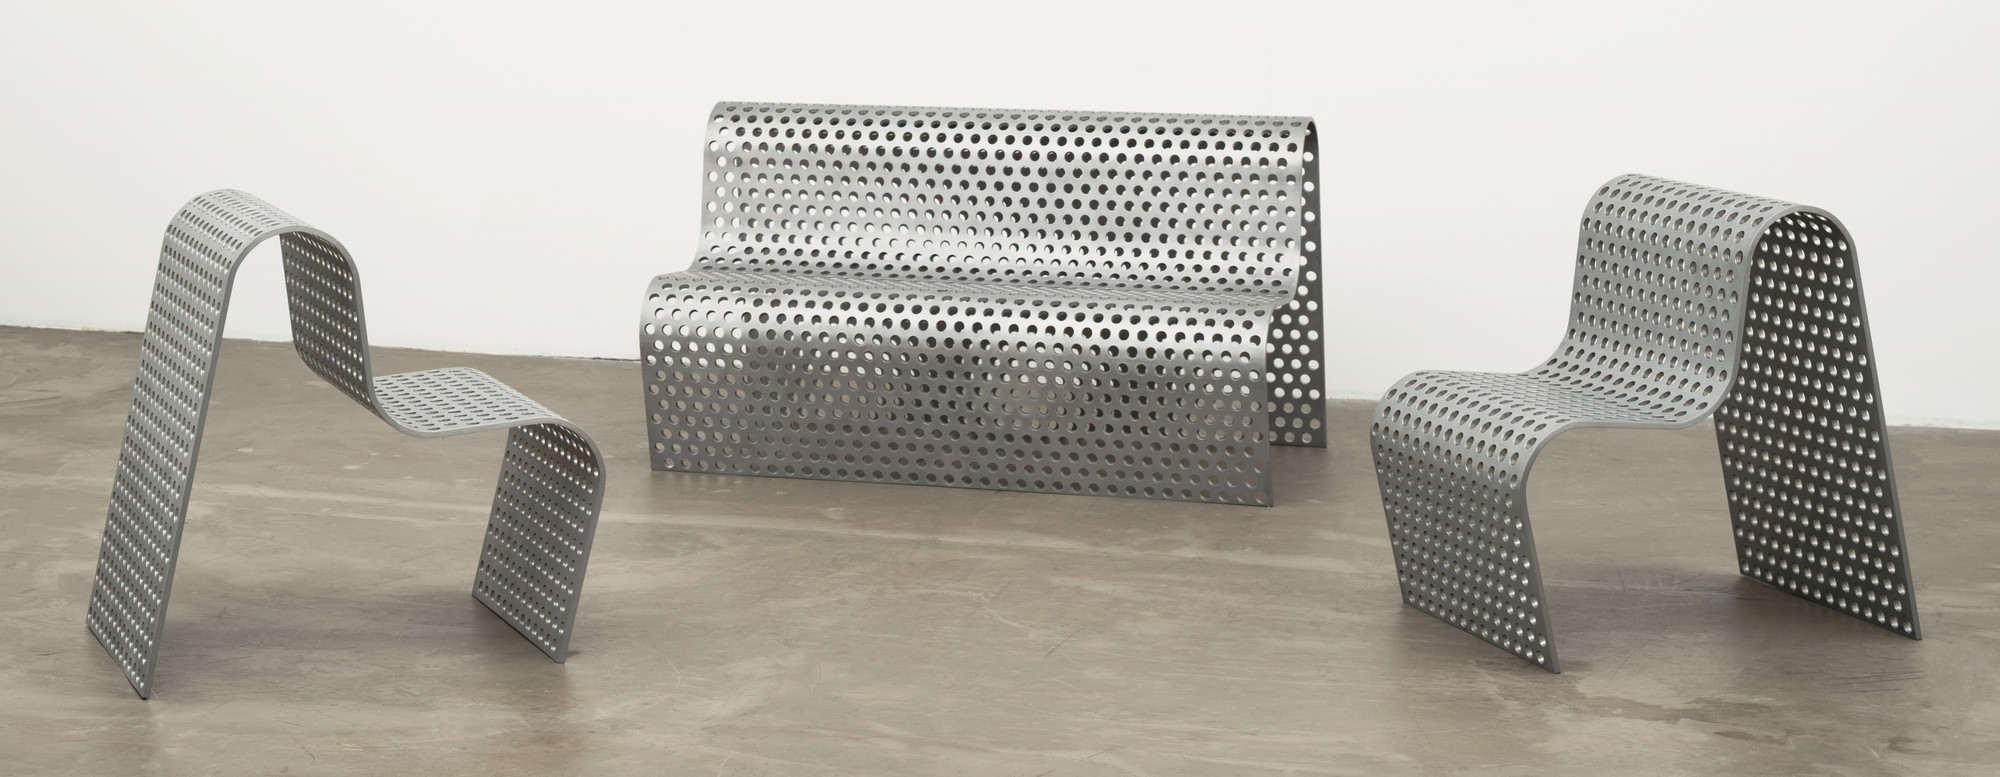 Scott Burton. Perforated Metal Settee and Perforated Metal Chairs. 1988-89